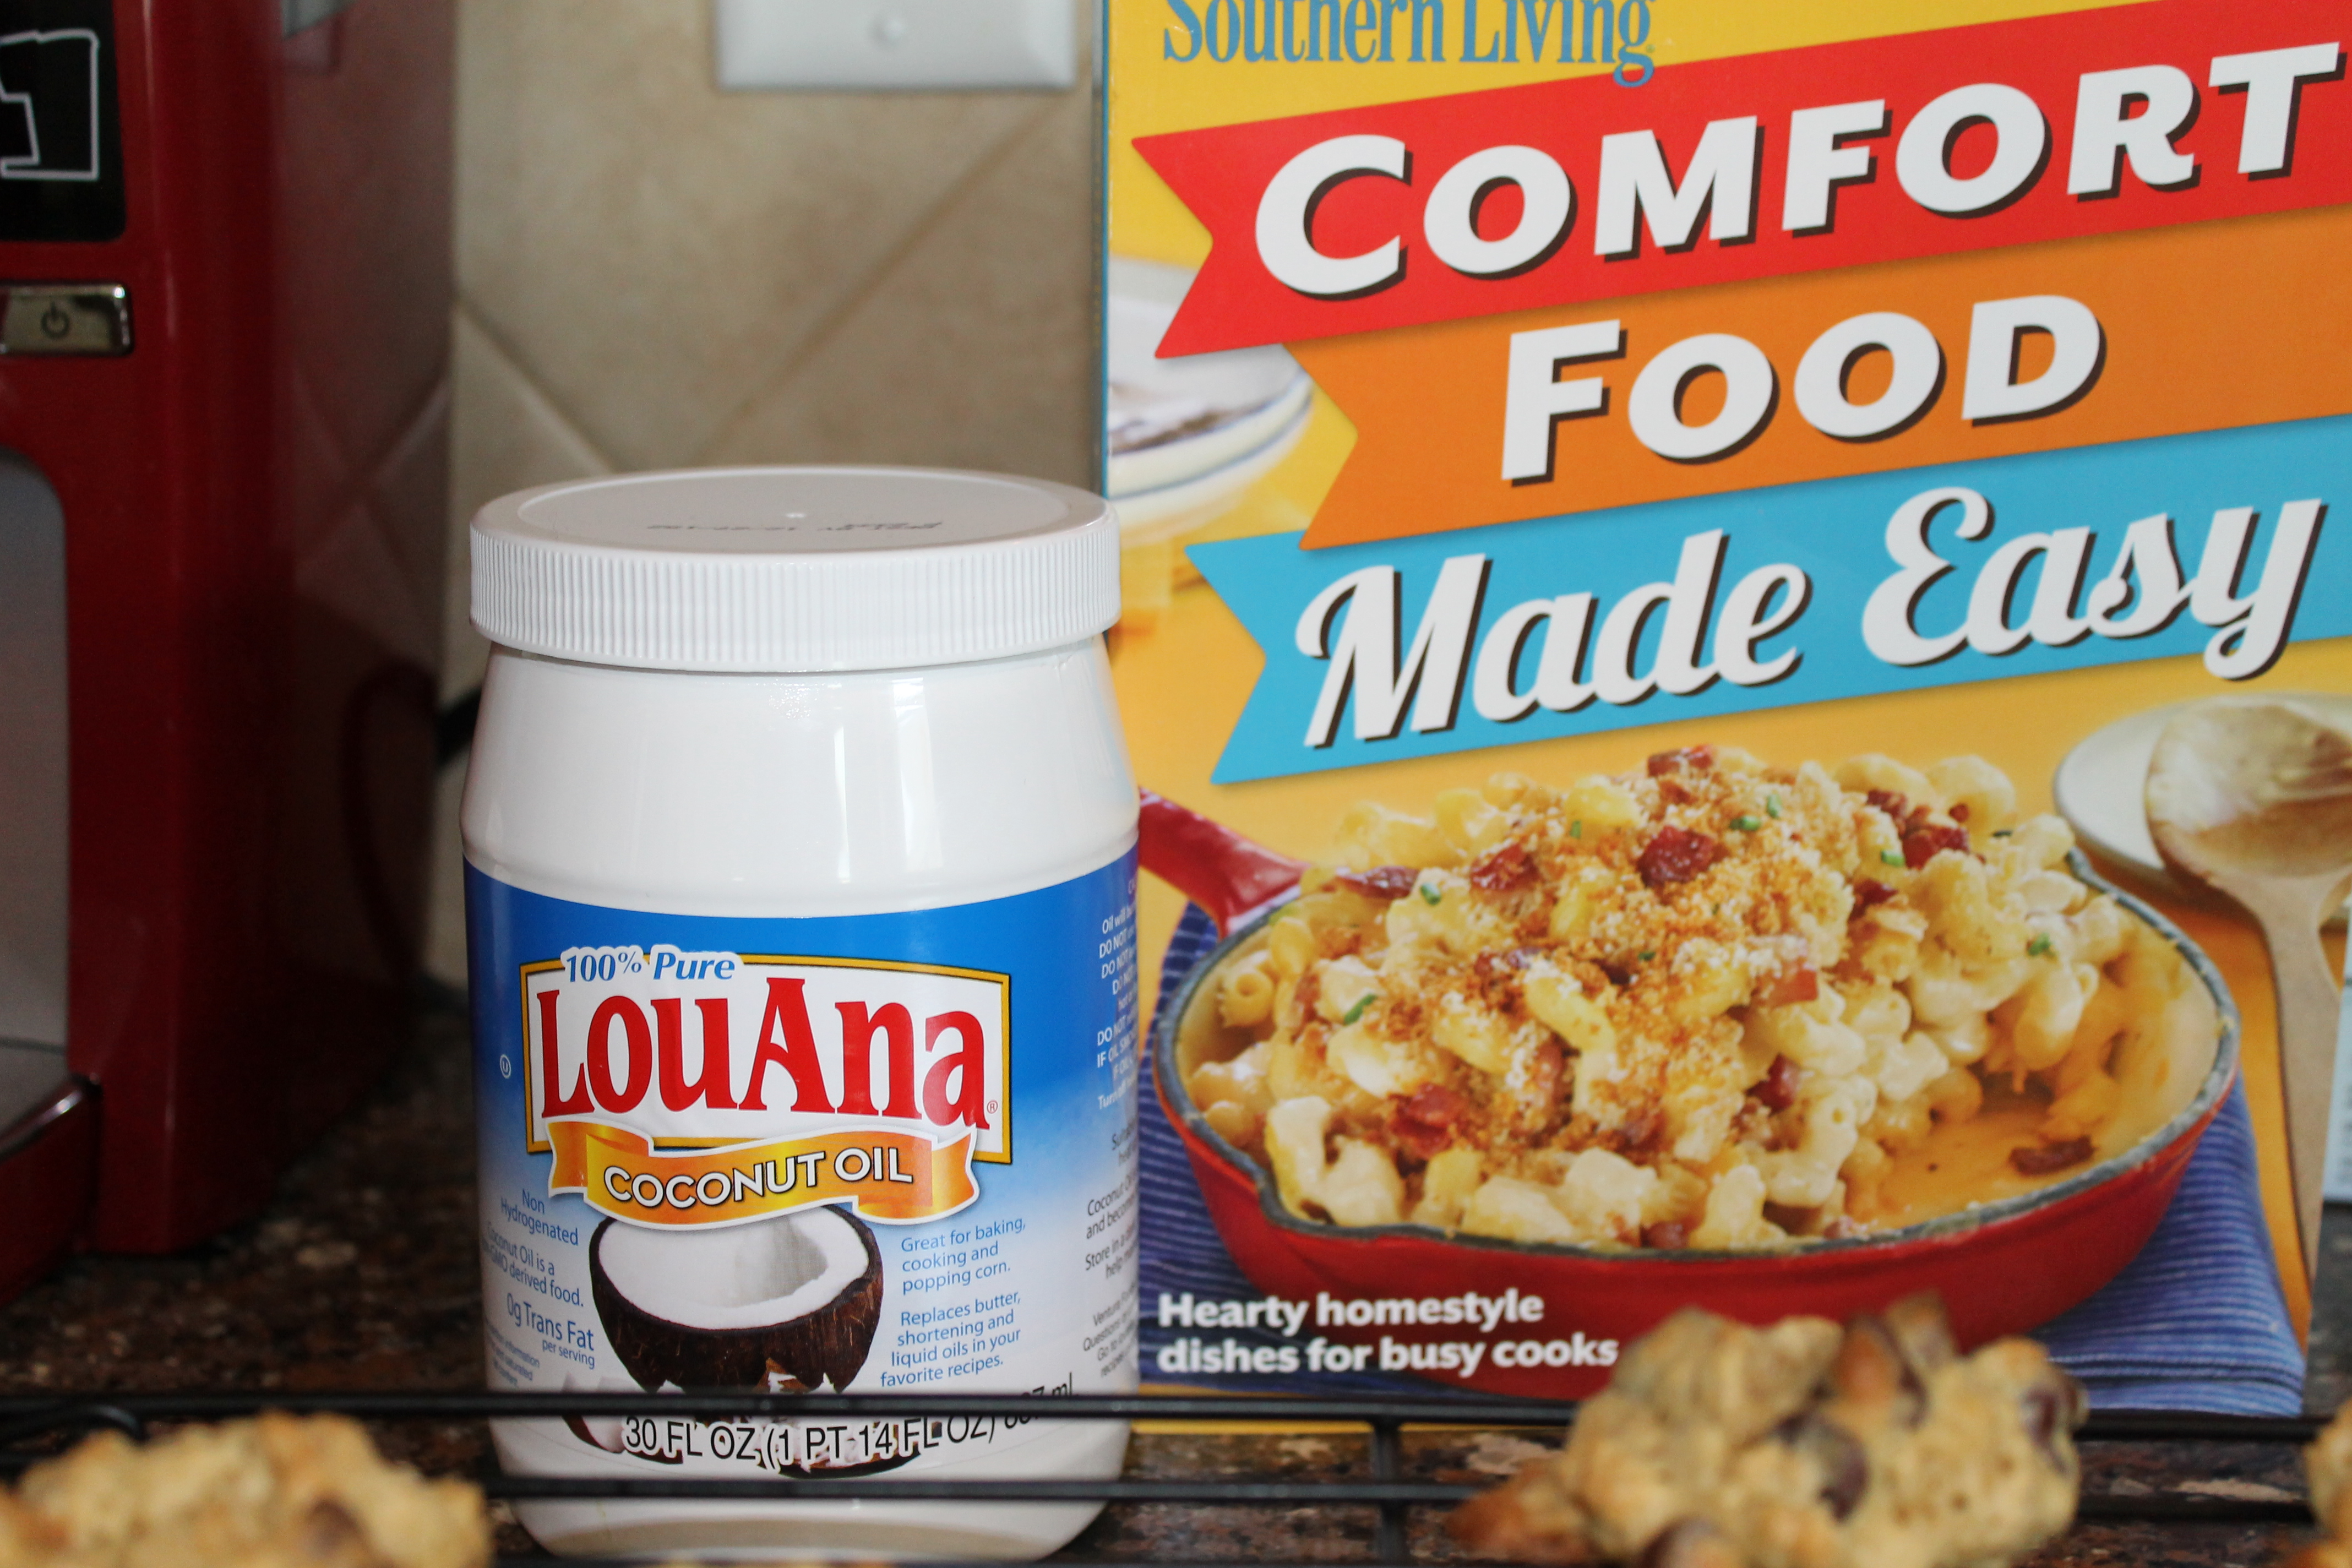 Southern living comfort food made easy would you like this cookbook and a jar of louanas coconut oil see details below forumfinder Choice Image